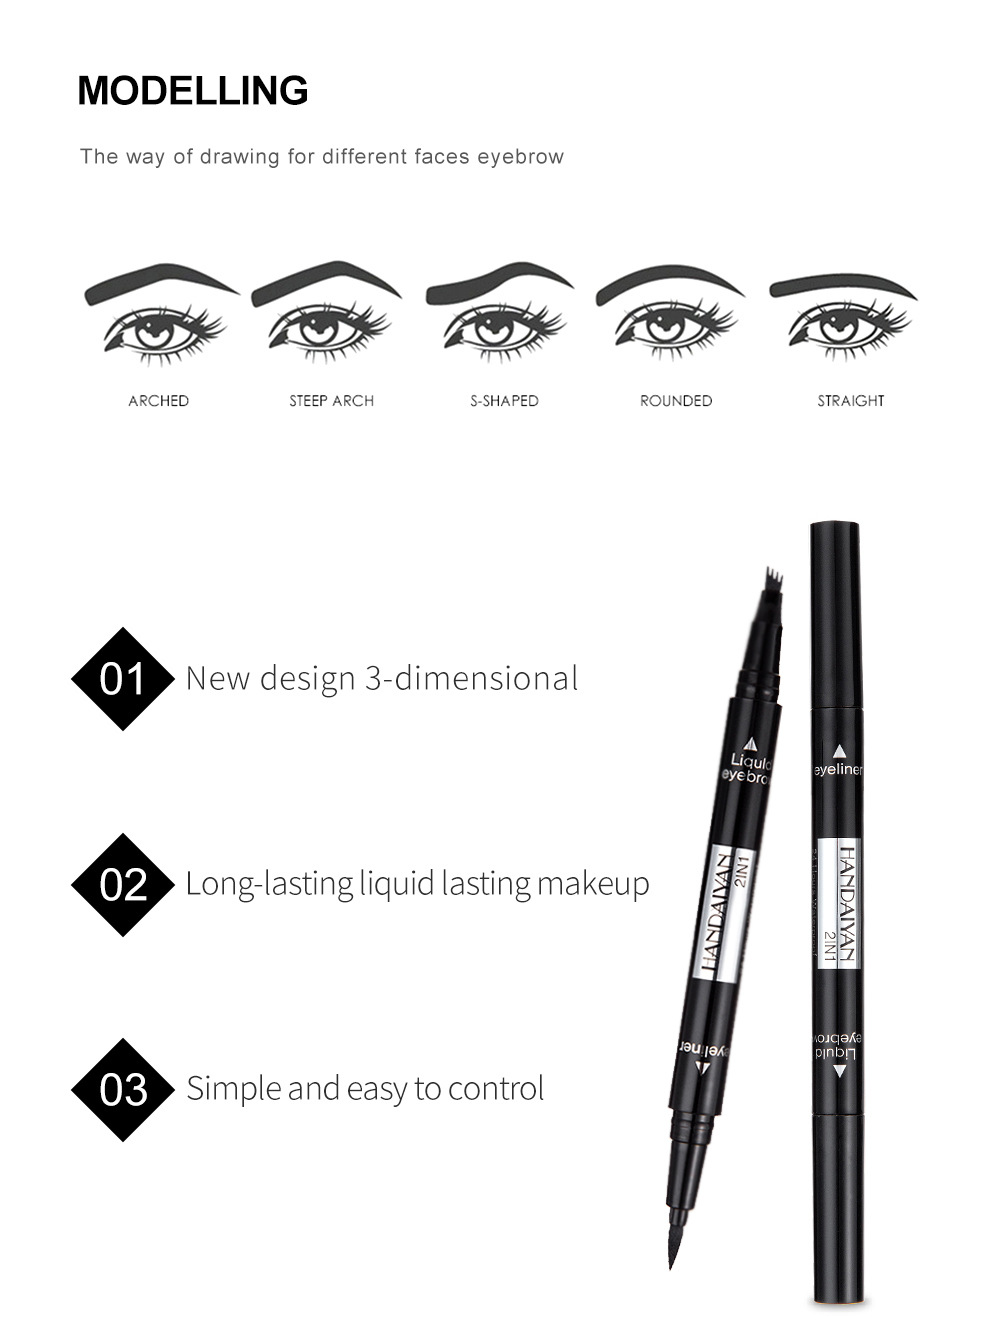 Beauty Essentials 1pc Double-headed Seal Black Eyeliner Triangle Seal Eyeliner 2-in-1 Waterproof Eyes Make Kit With Eyeliner Pen New Sufficient Supply Back To Search Resultsbeauty & Health